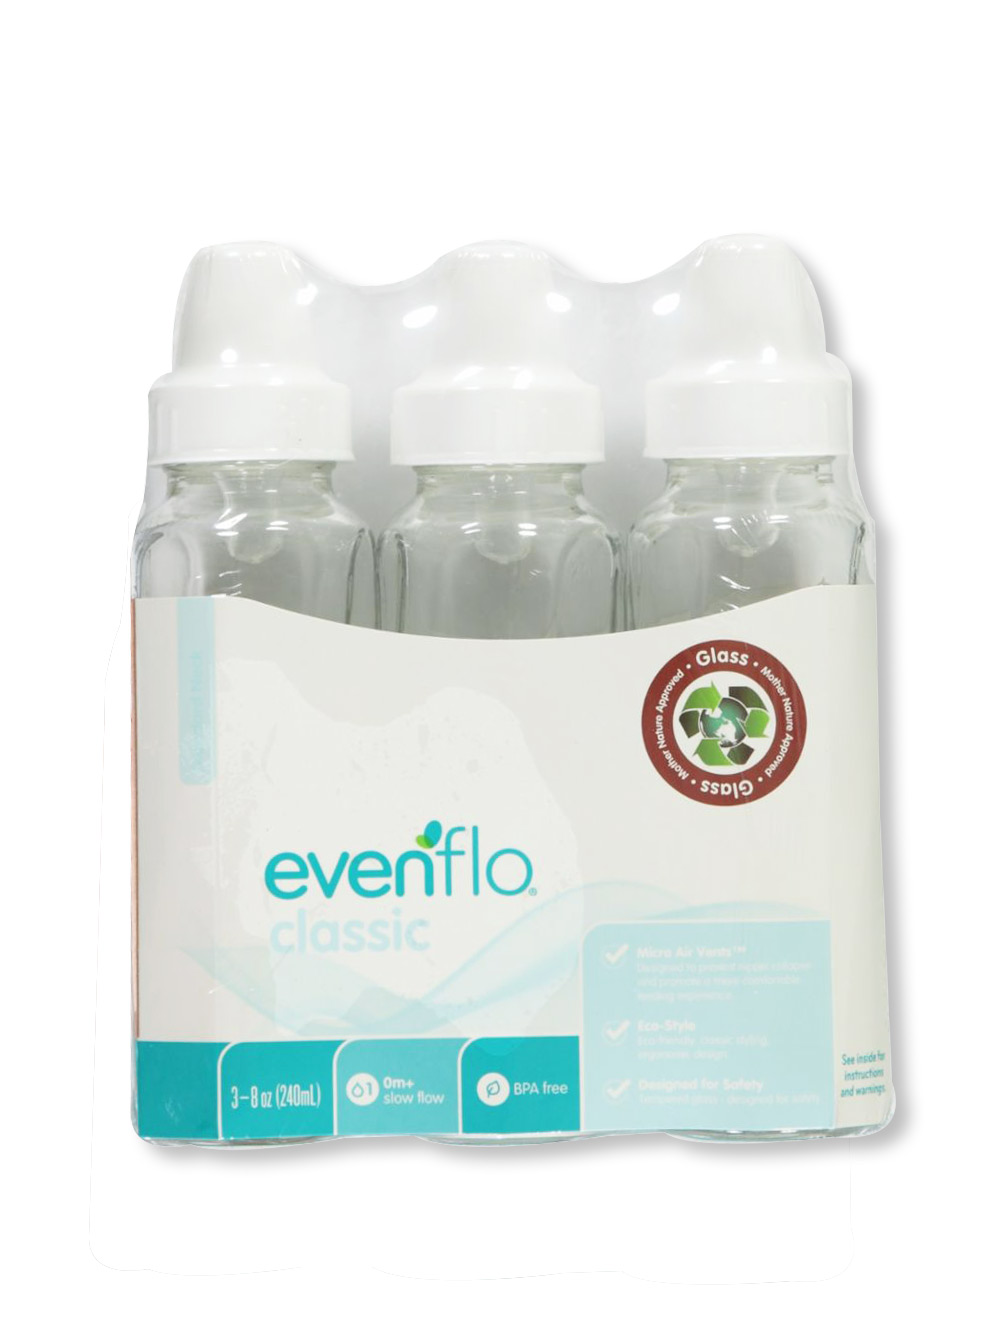 Evenflo Bottles